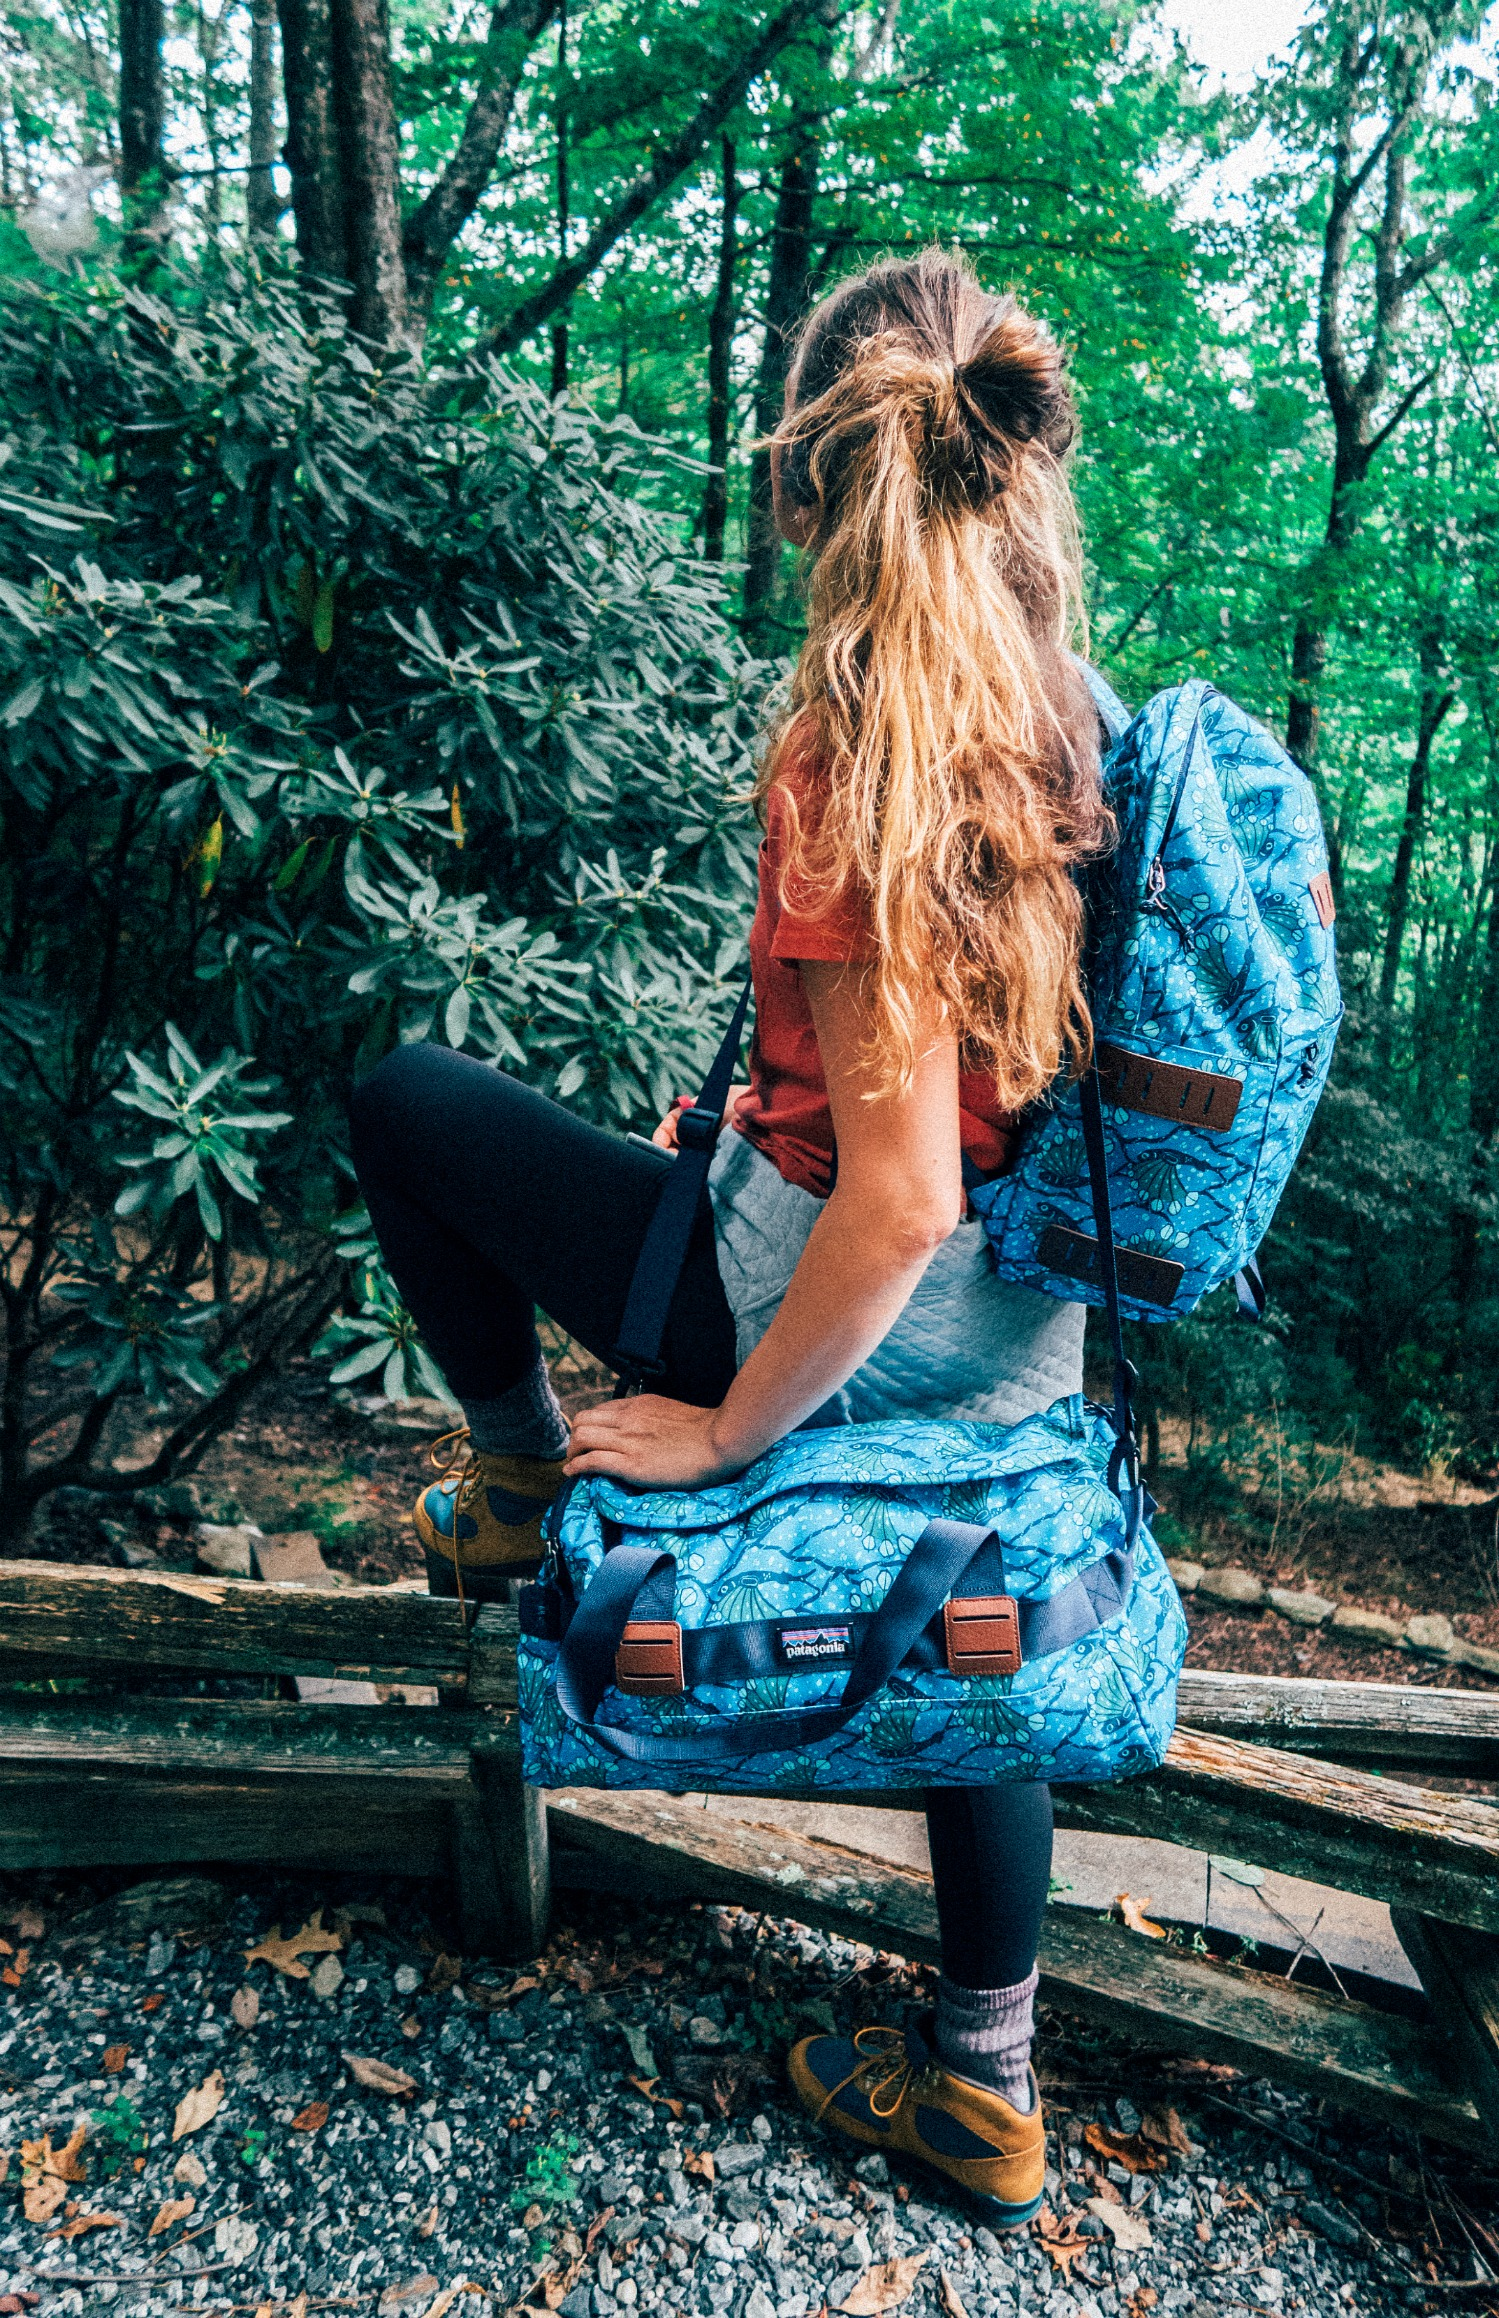 backcountry Patagonia bags what to wear hiking camping trip